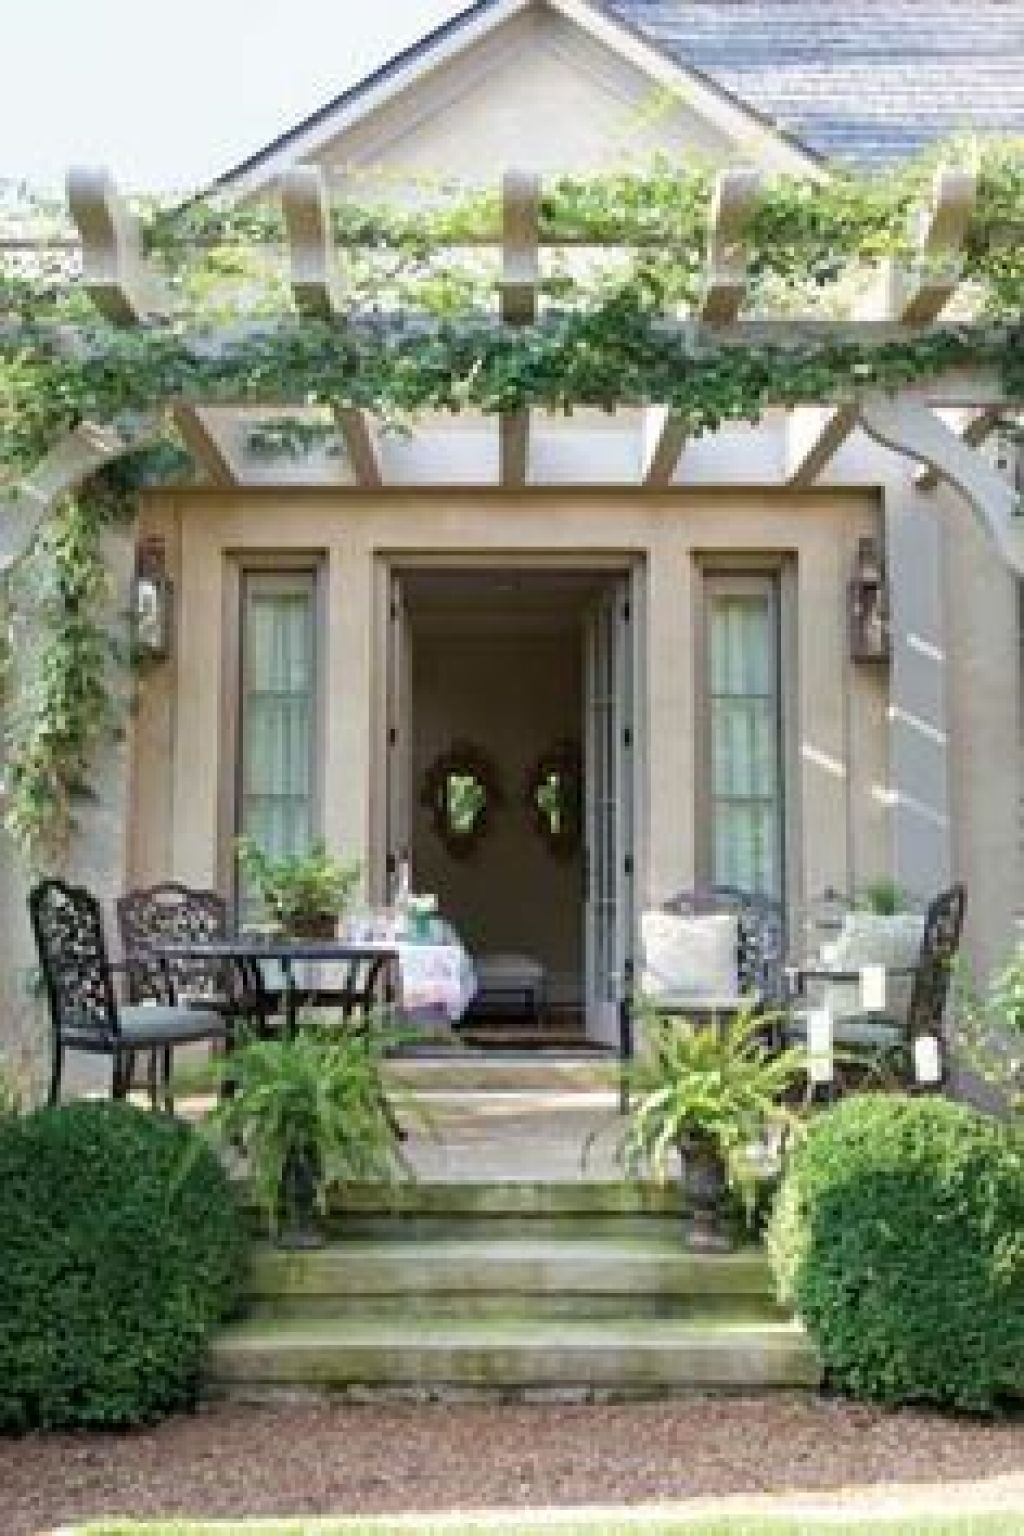 1000 ideas about front porch pergola on pinterest pergolas for Outdoor porches and patios